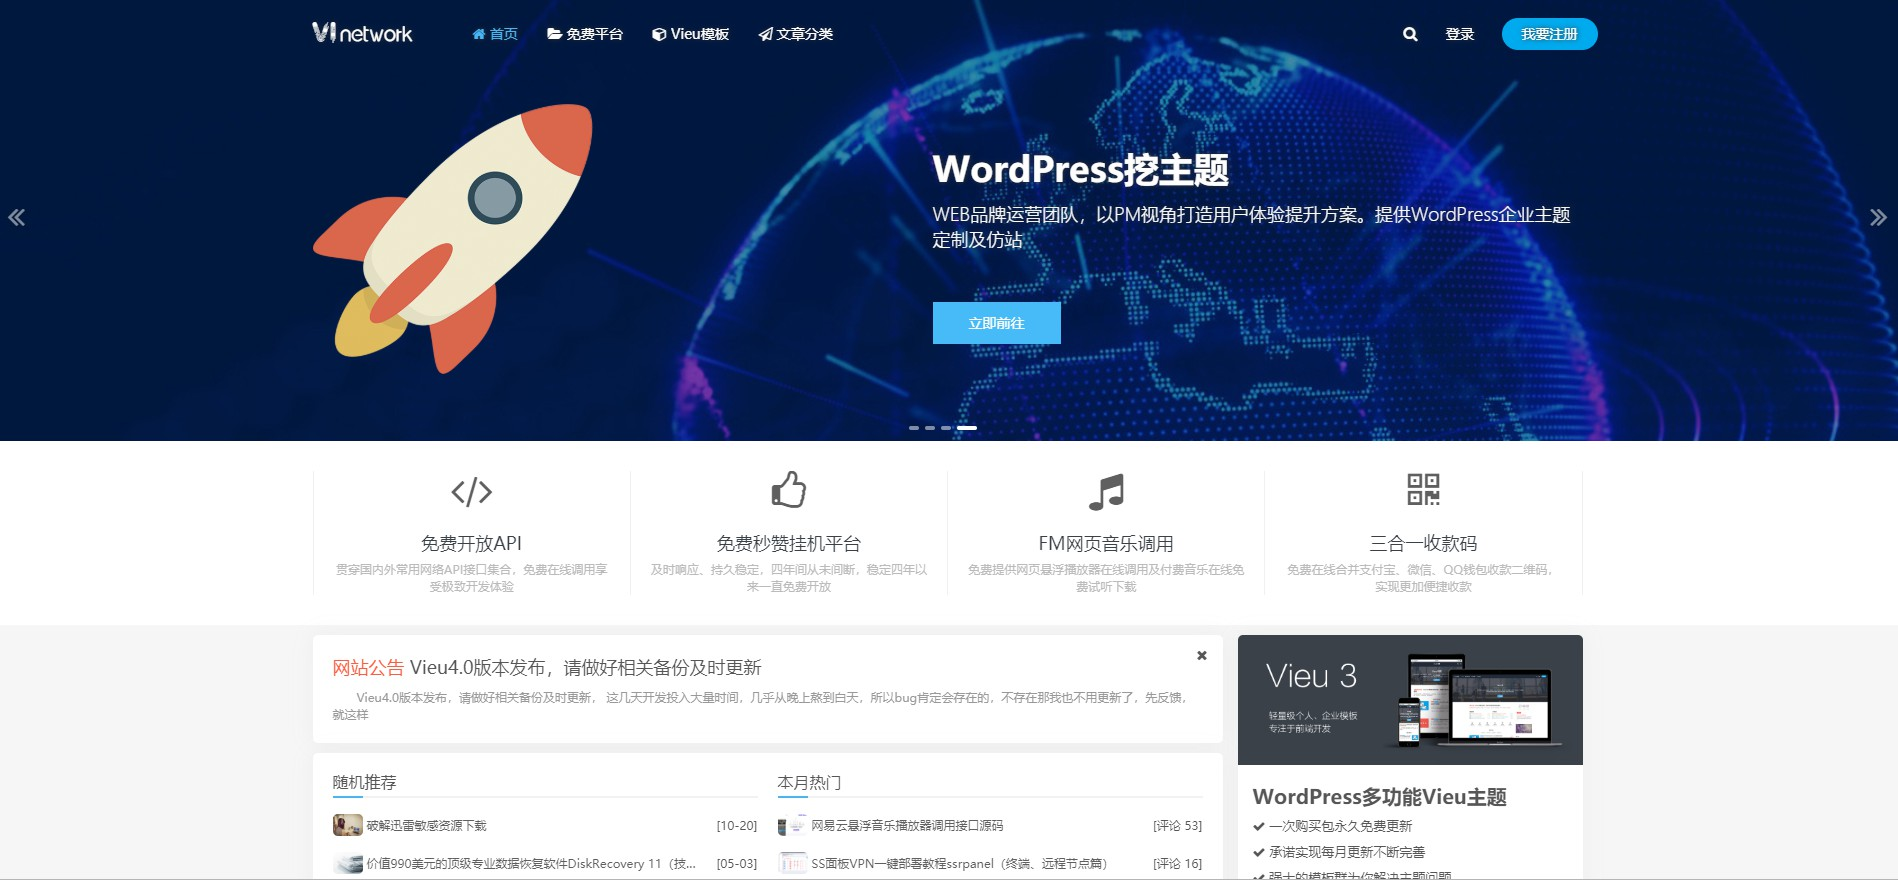 wordpress主题Vieu4.0更新啦